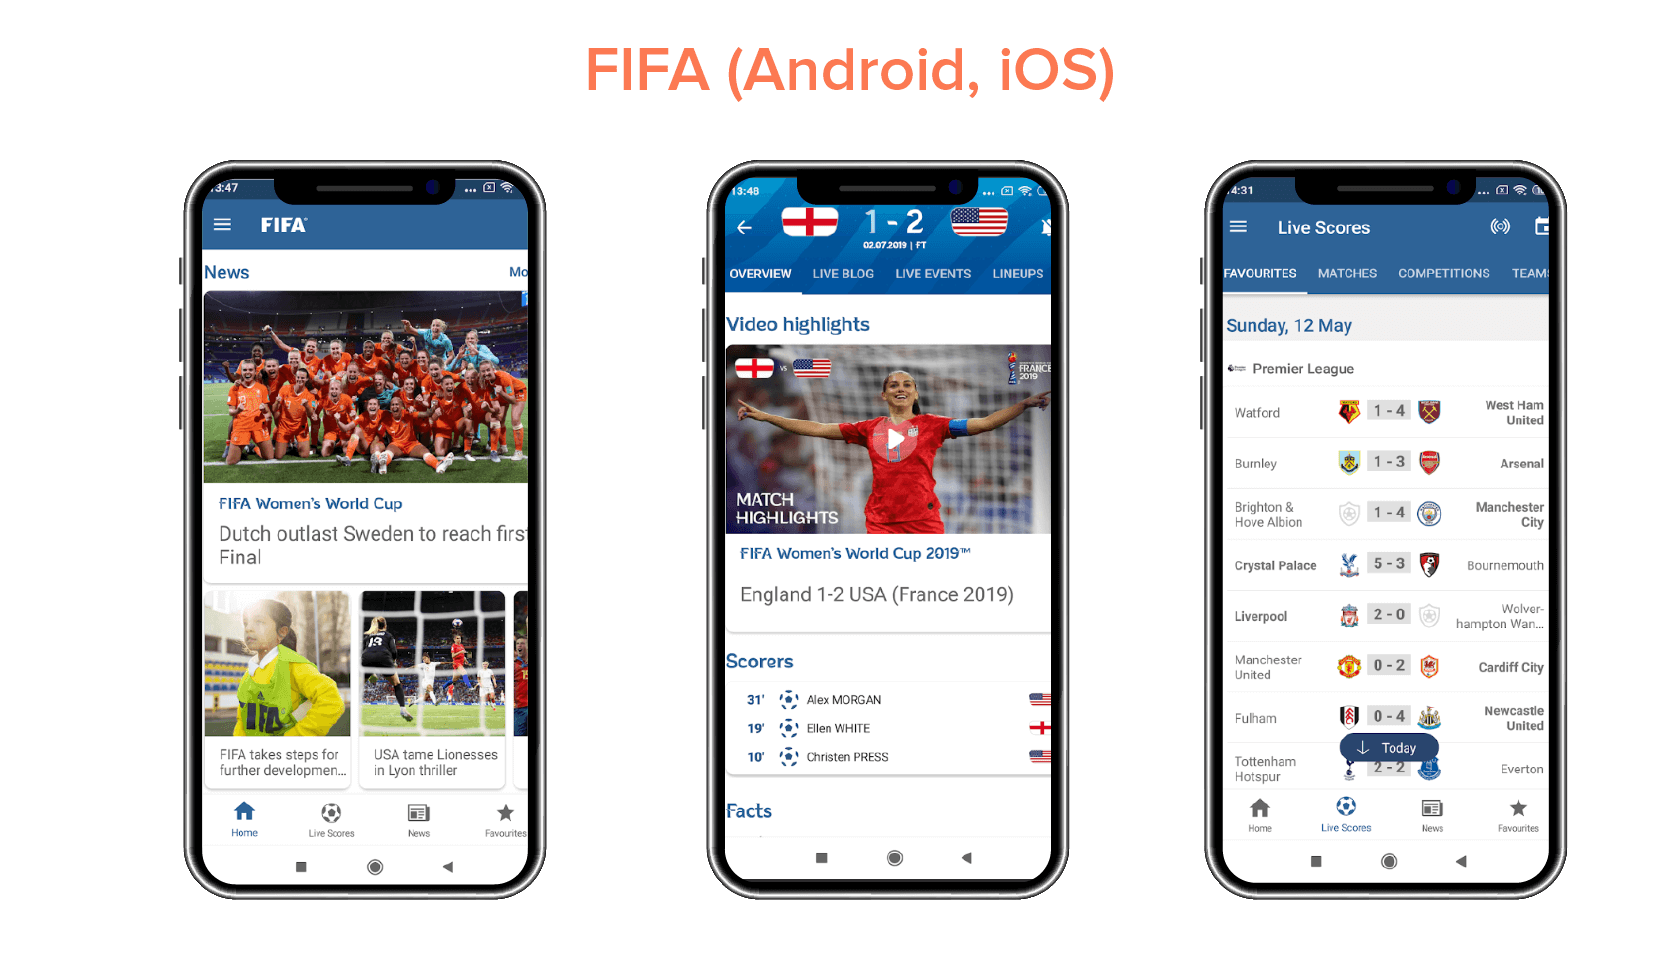 FIFA (Android, iOS)